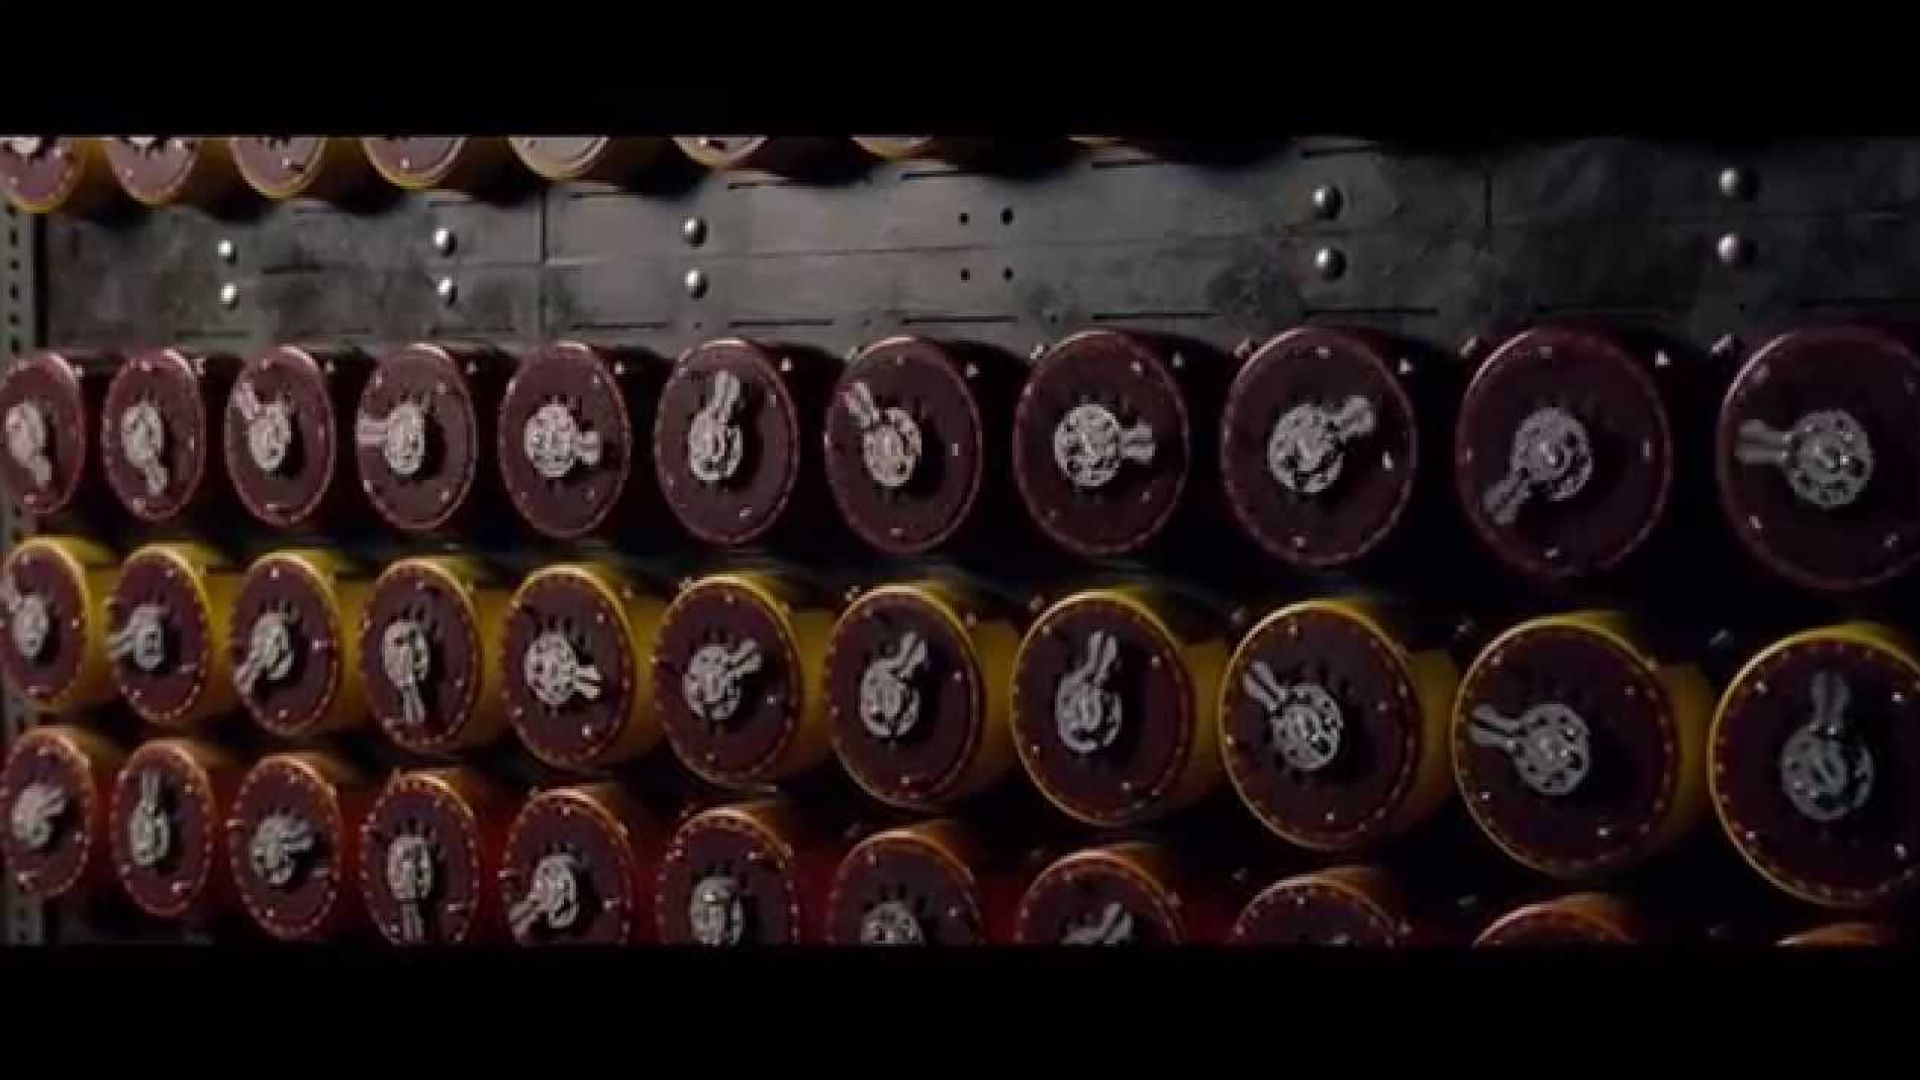 Official Academy Awards Trailer for 'The Imitation Game'